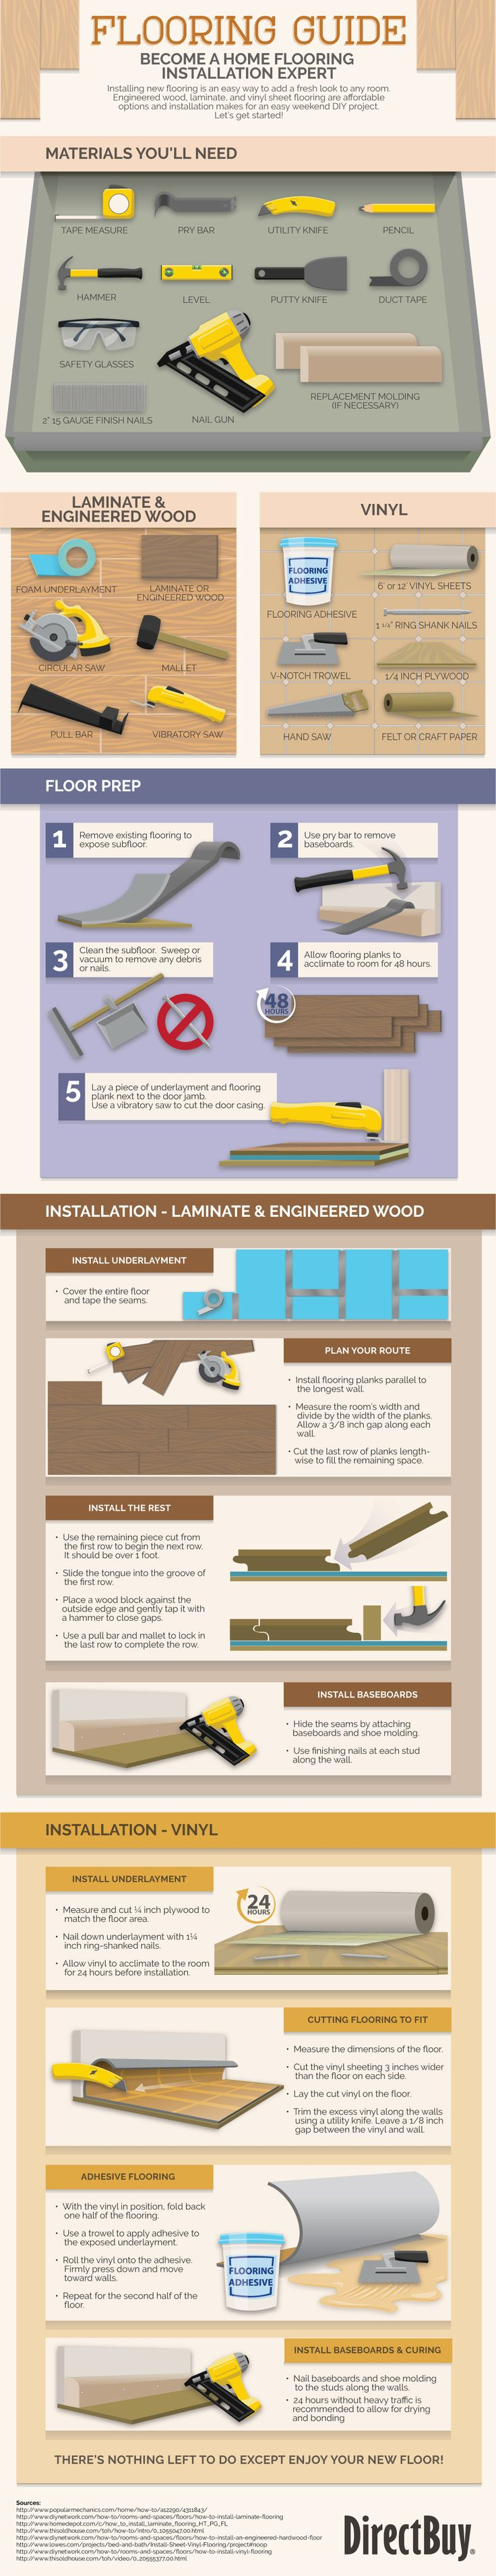 Installing new flooring can be an easy way to add a fresh look to any room. Engineered wood, laminate and vinyl sheet flooring are affordable options, and simple installation can make for an easy weekend DIY flooring project. Here is a guide on what you will need in order to complete a home flooring project and how to prep for it before you start.